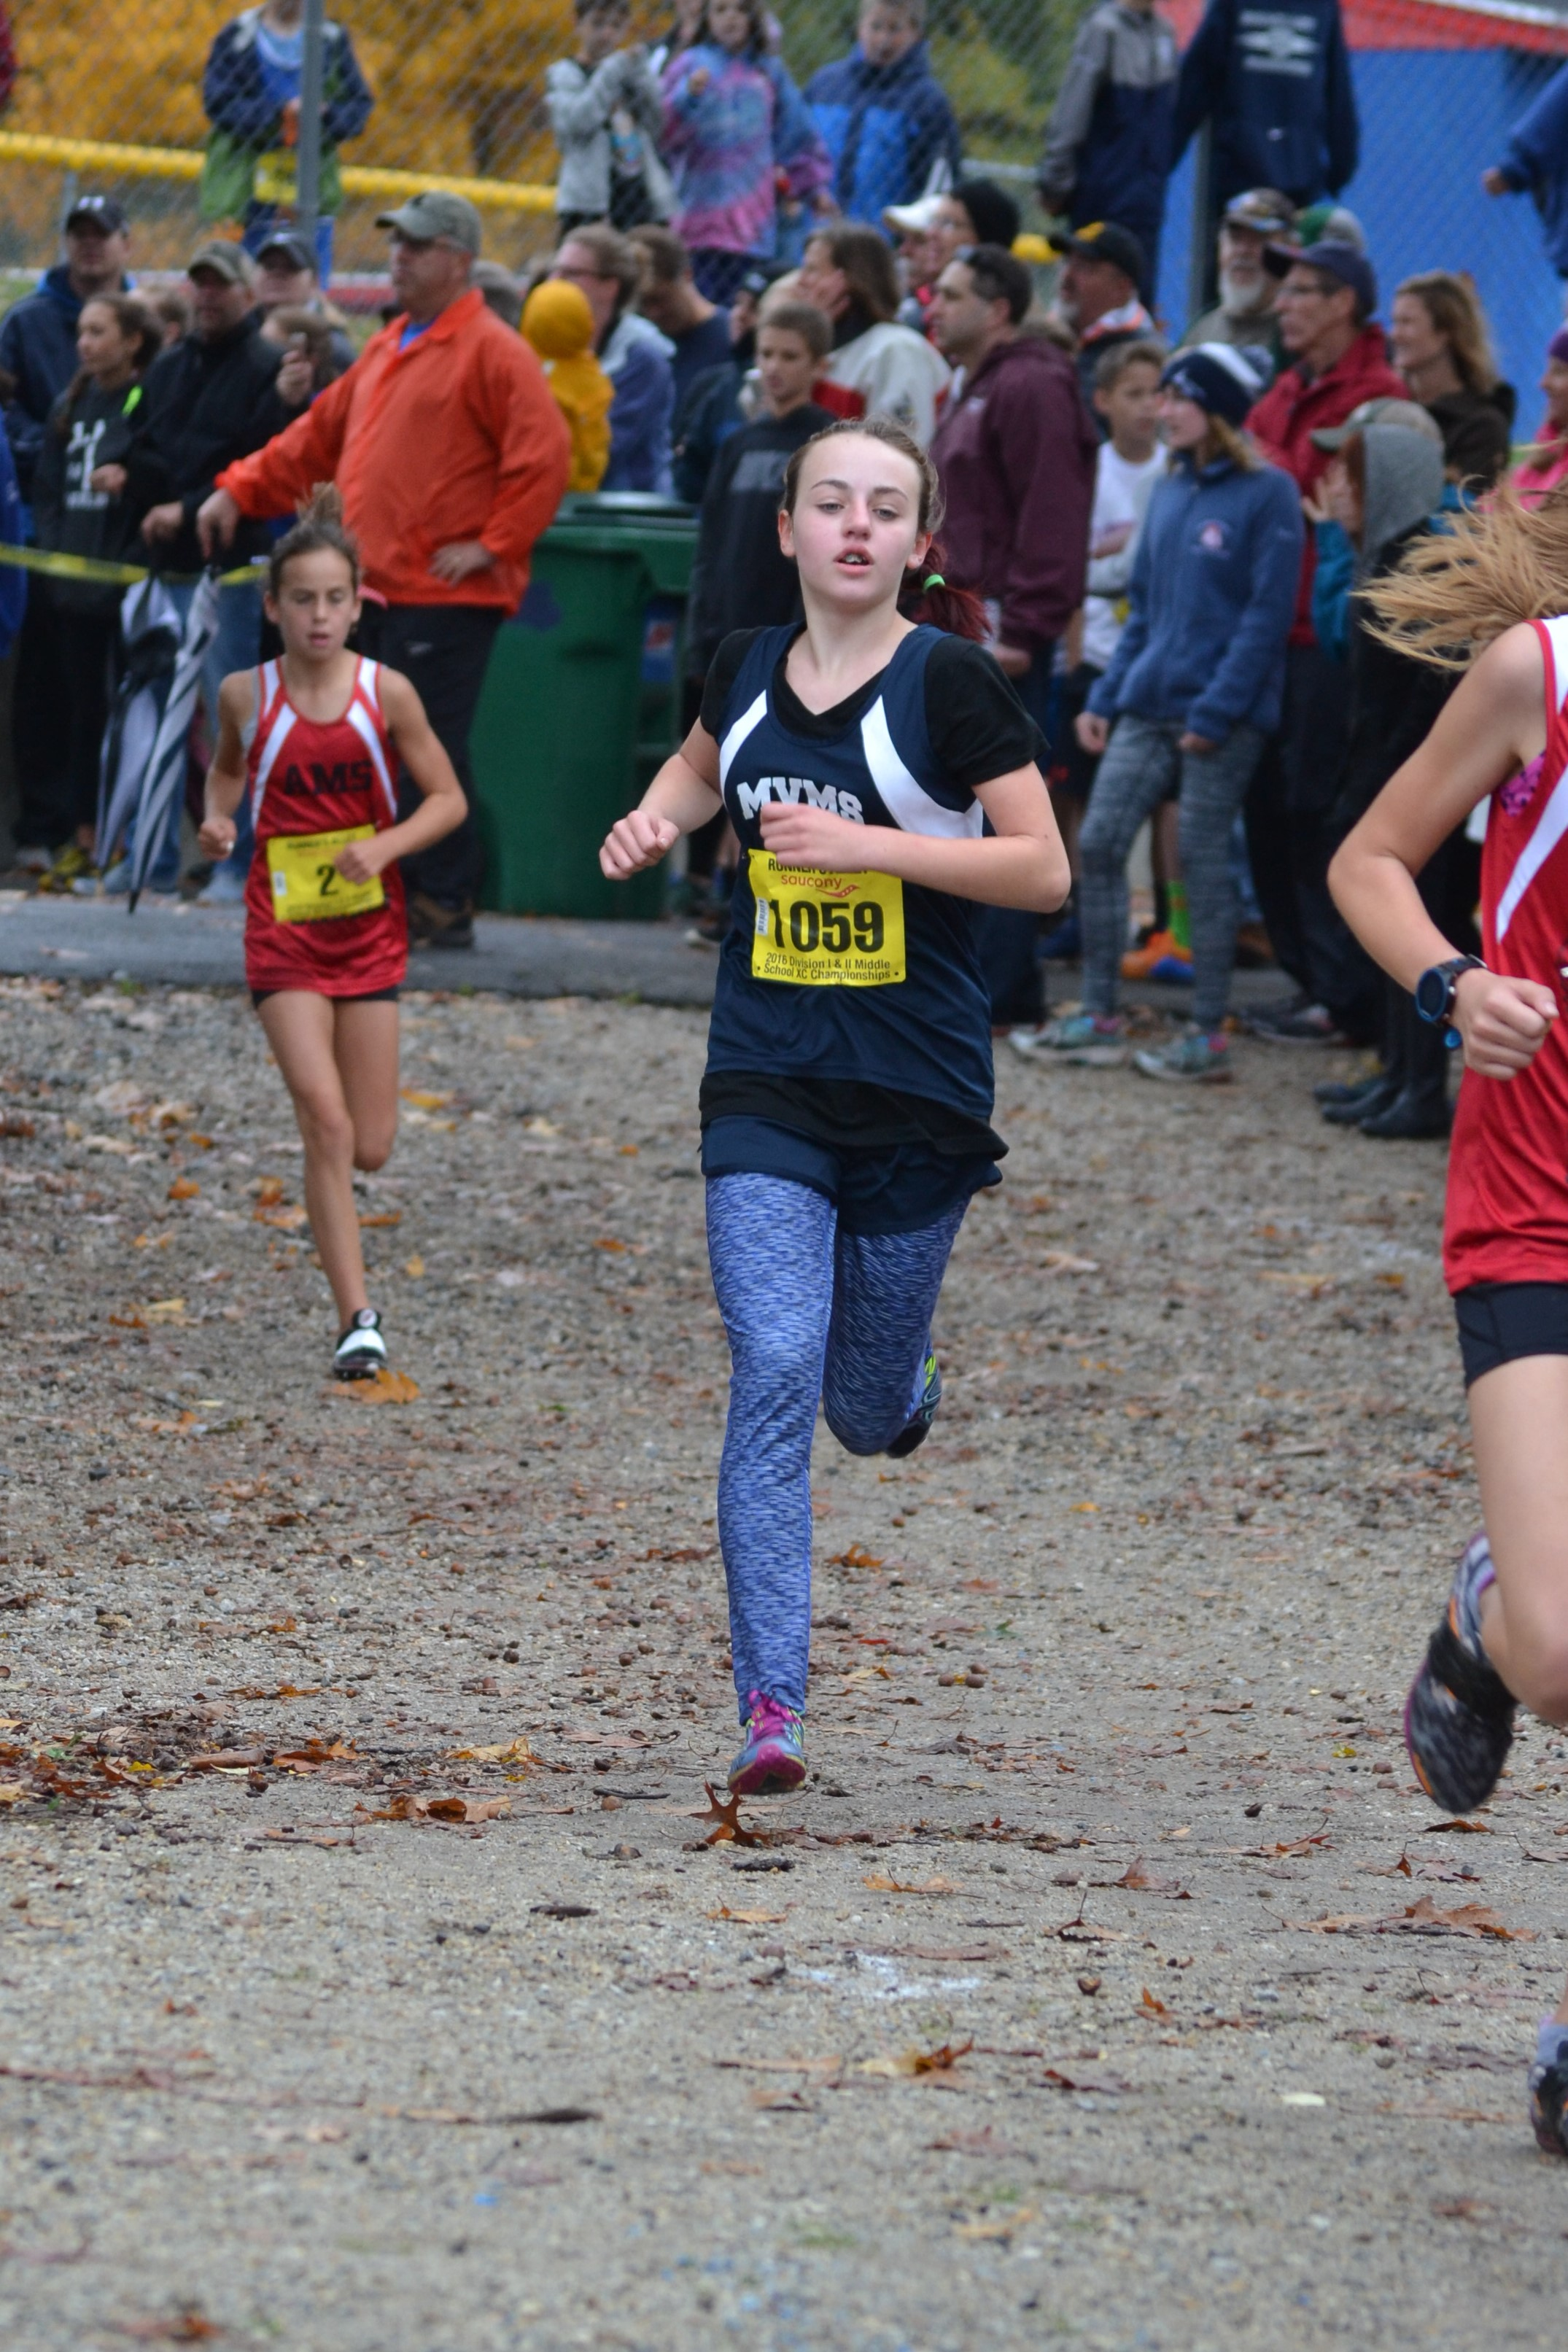 Sophia Runs Her Way to a Top-10 Finish at the Middle School DII Championship